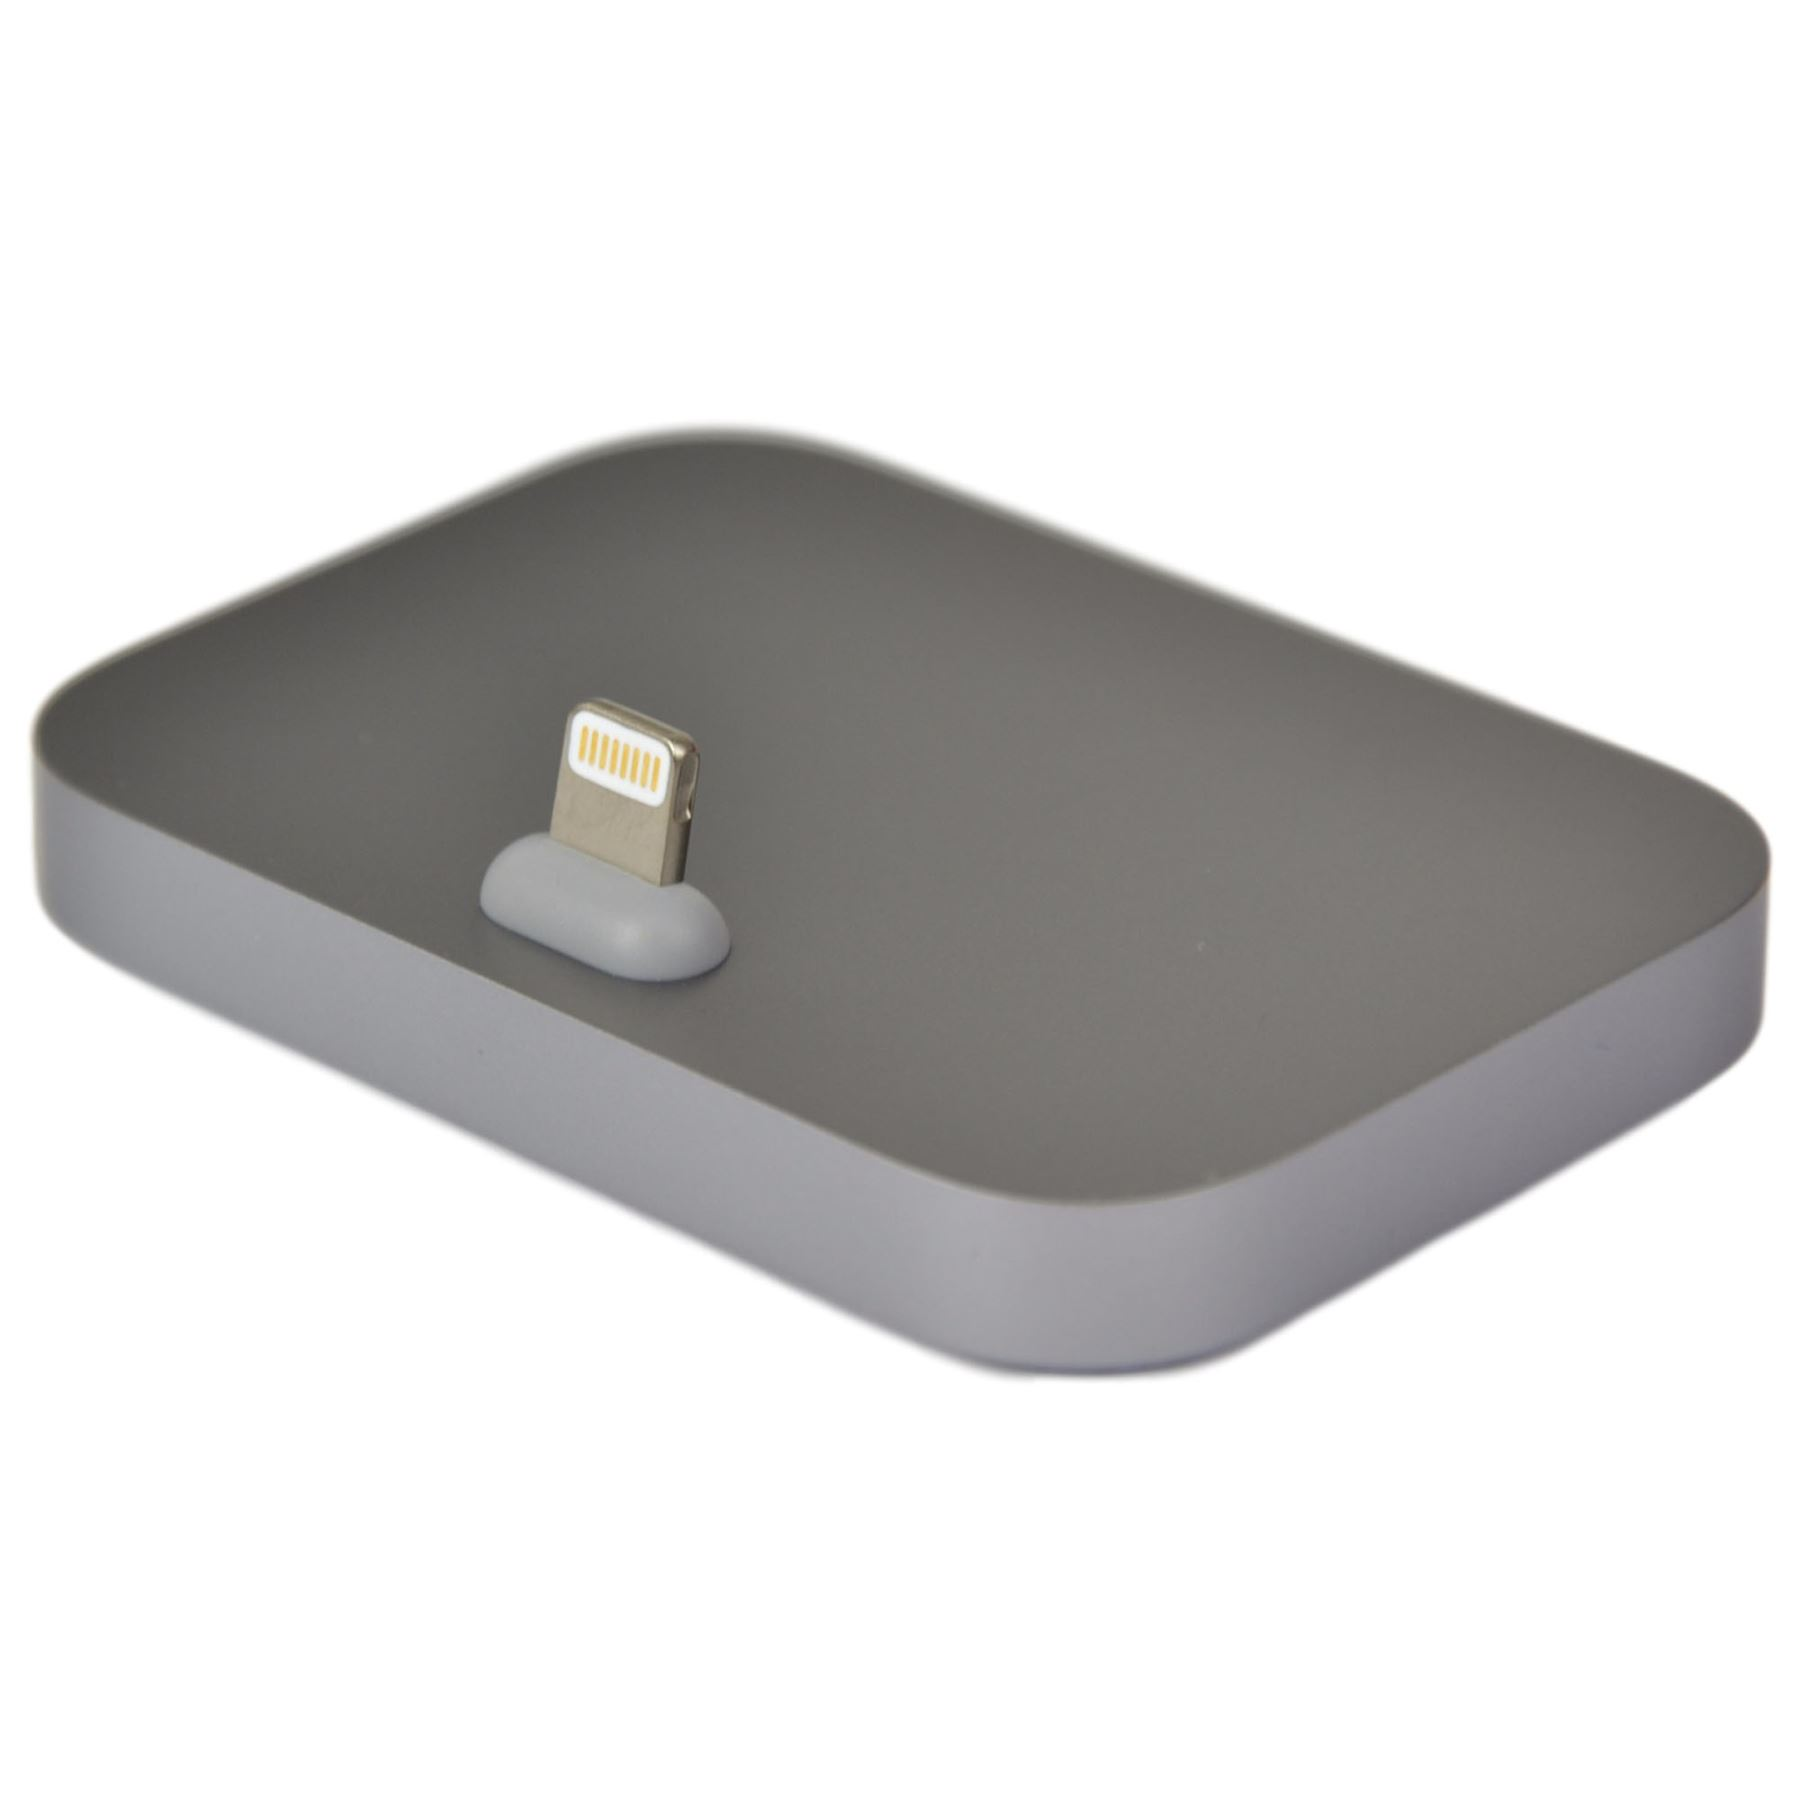 Genuine-Apple-iPhone-Lightning-Dock-Caricabatteria-Docking-Station-Stand-iPhone-6-7-8-X